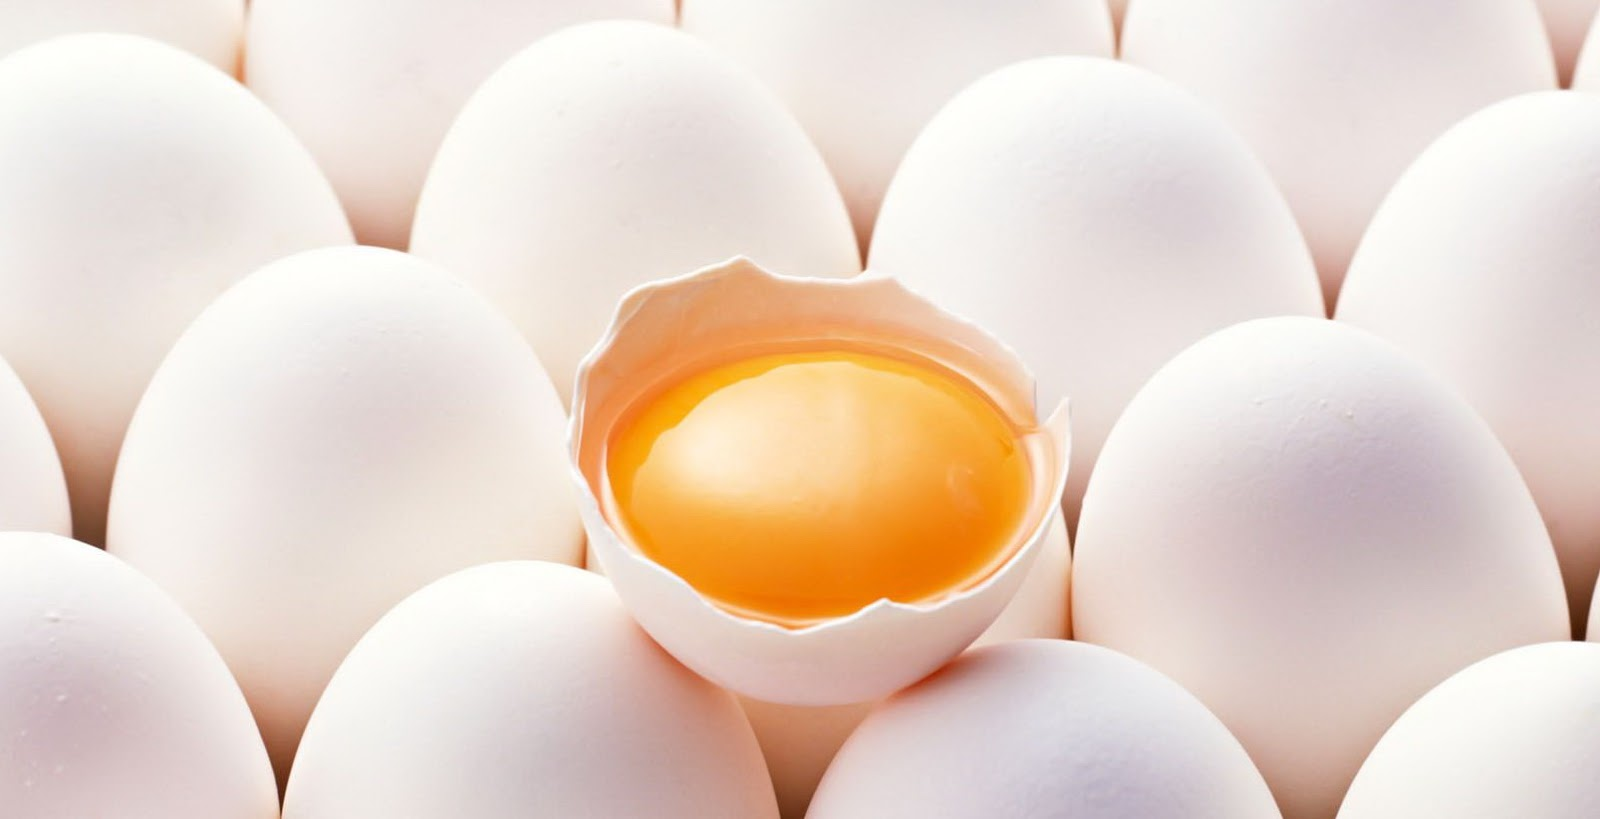 Whole Egg Nutrition Facts/ Everything About Eggs | HealthVist